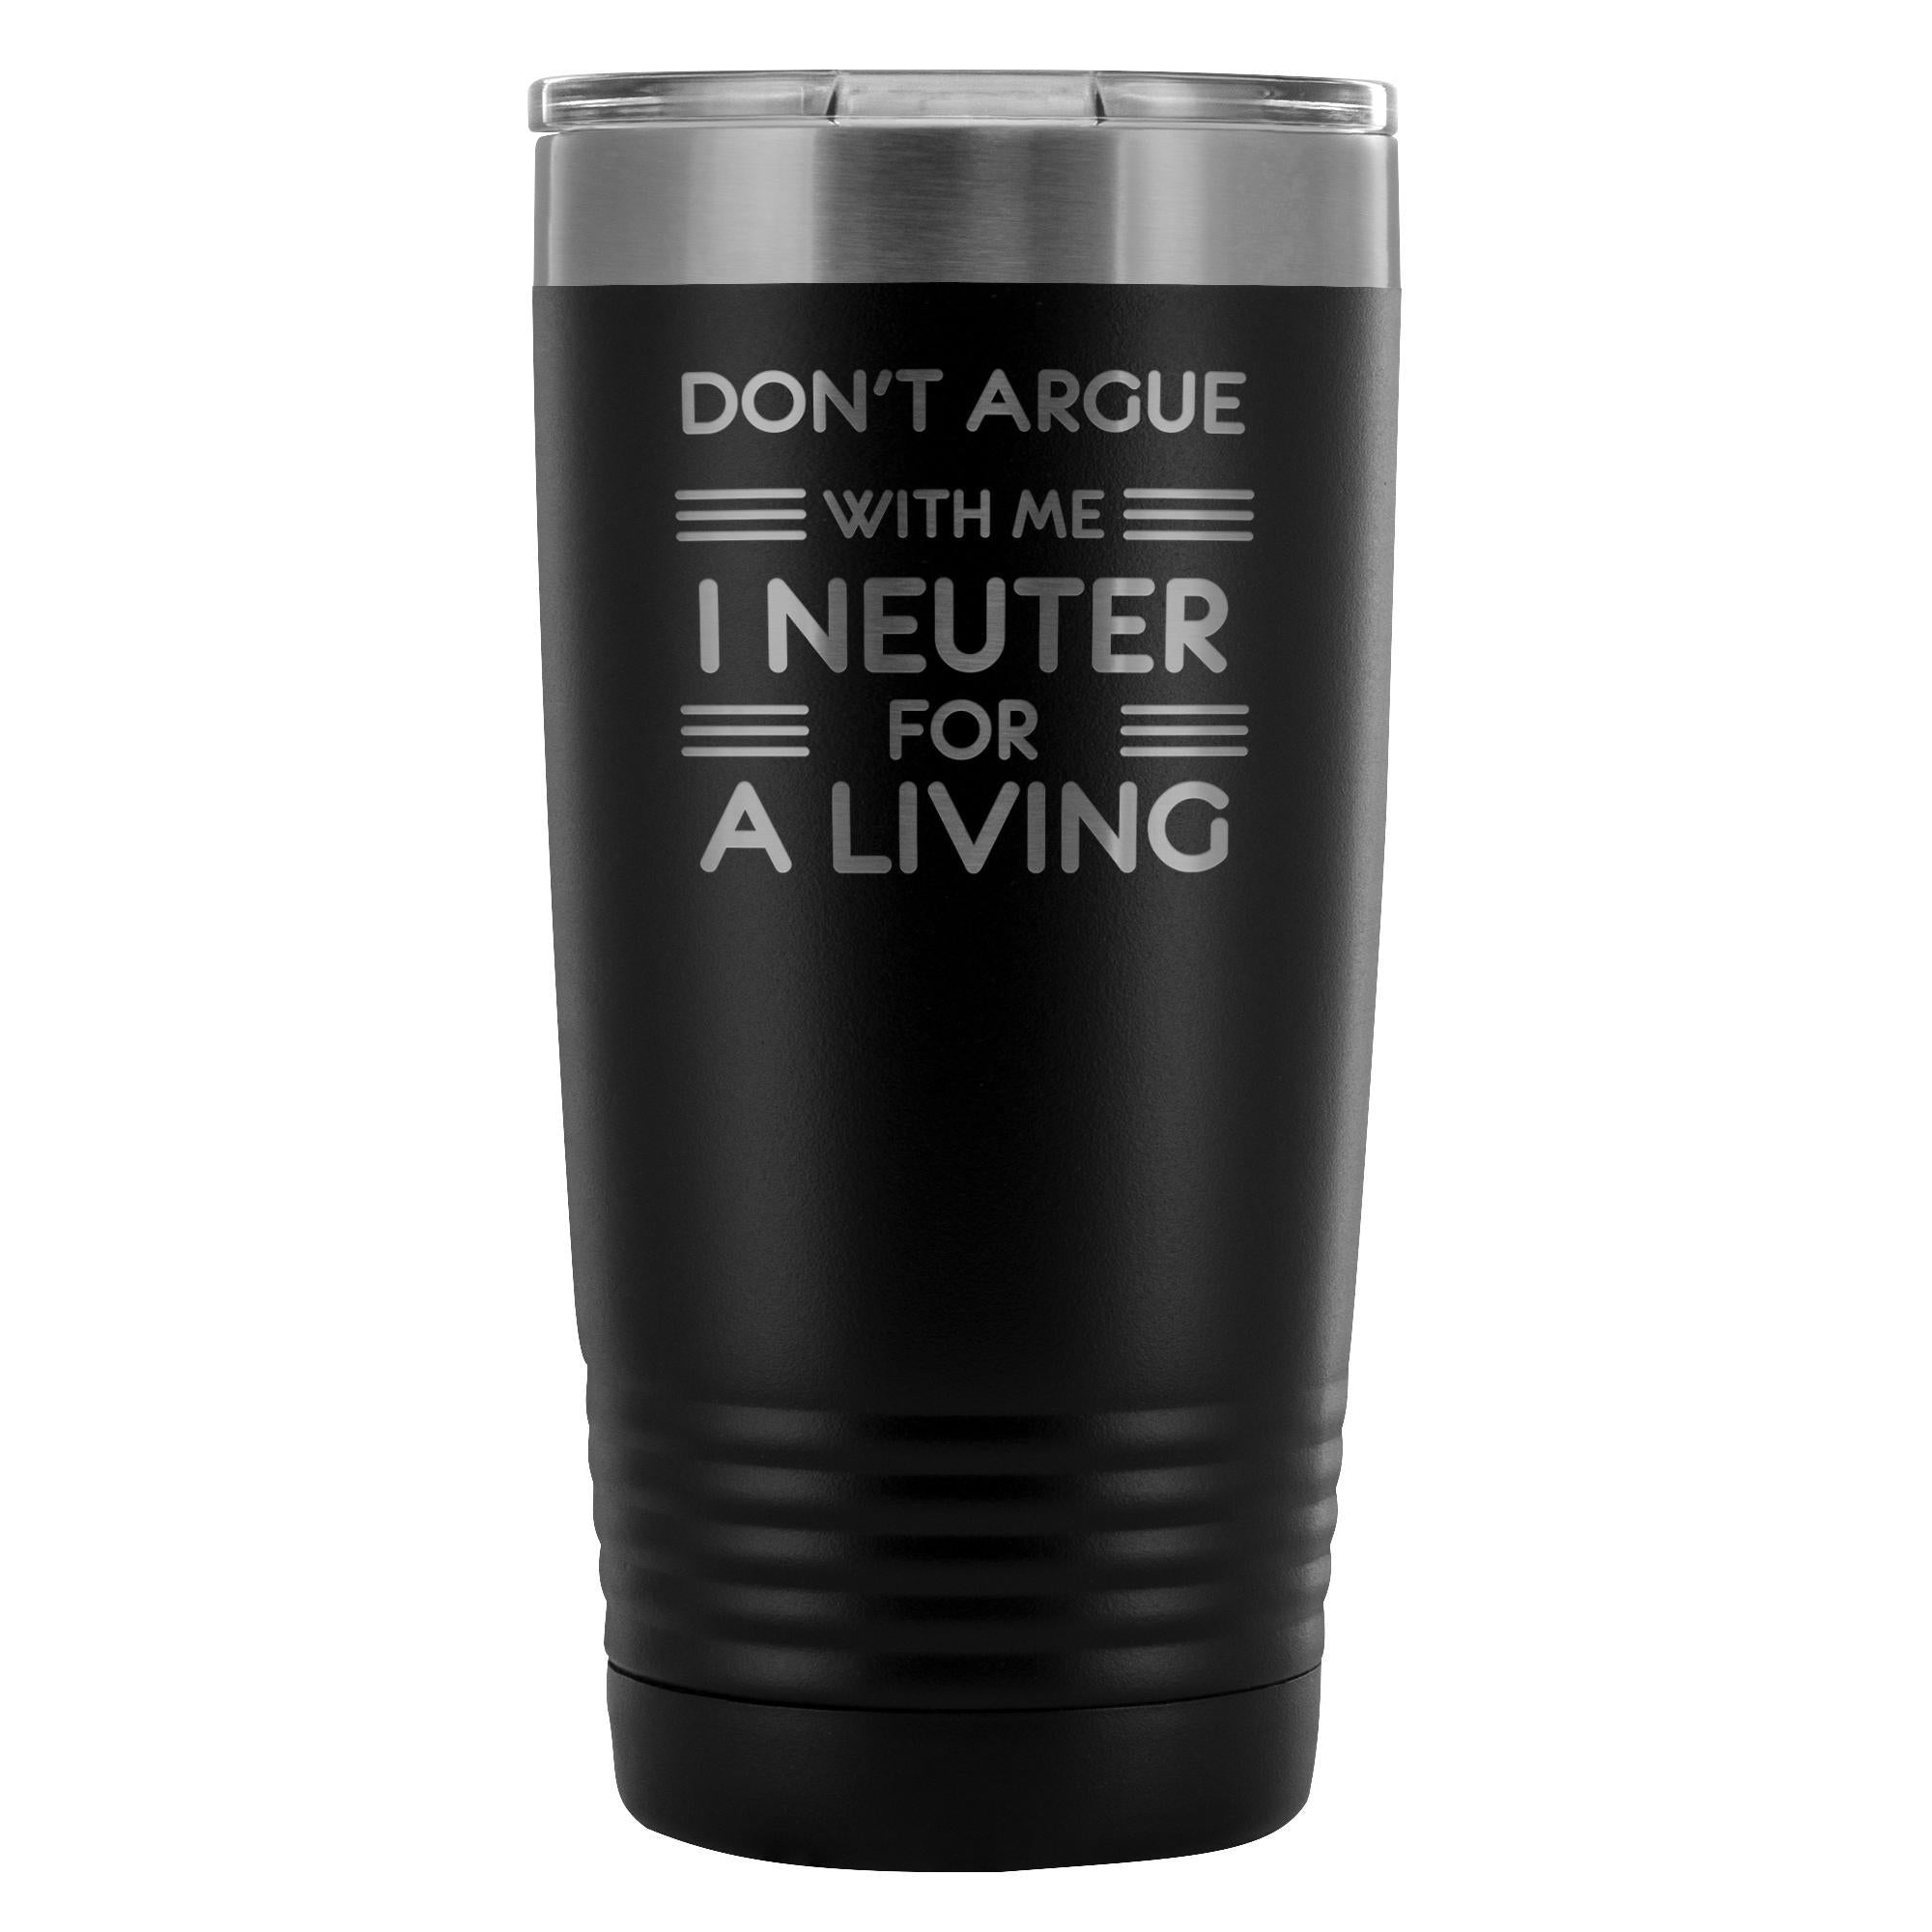 Don't argue with me I neuter for a living 20oz Vacuum Tumbler-Tumblers-I love Veterinary